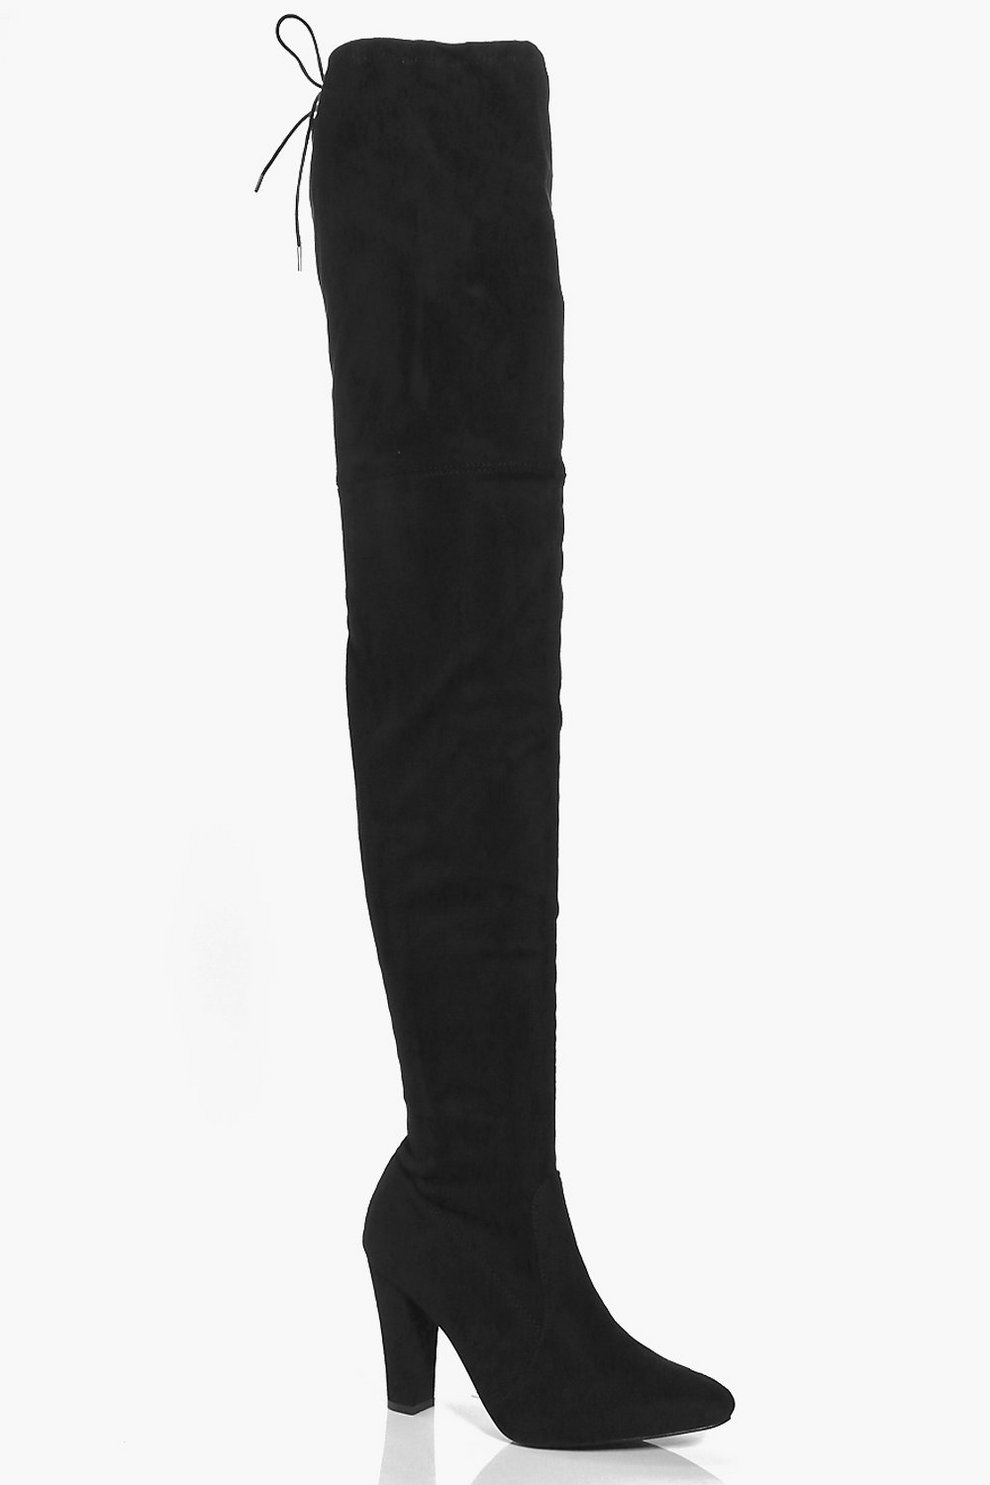 30e47f78dd Thigh High Block Heel Boots | Boohoo